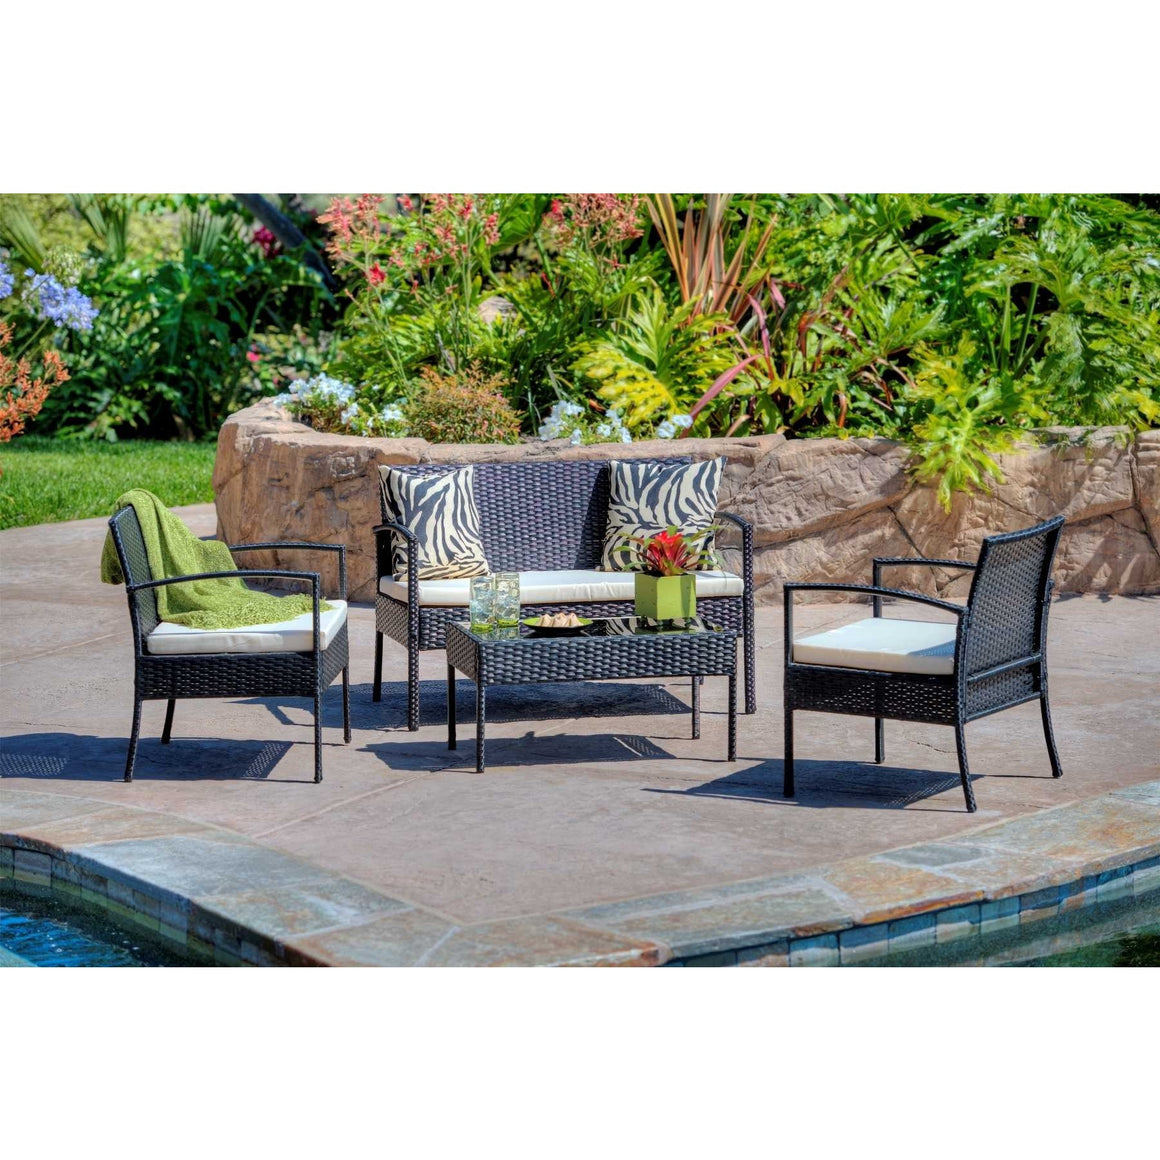 W Unlimited Outdoor Black Furniture 4PC set w/ Table Beige Cushions